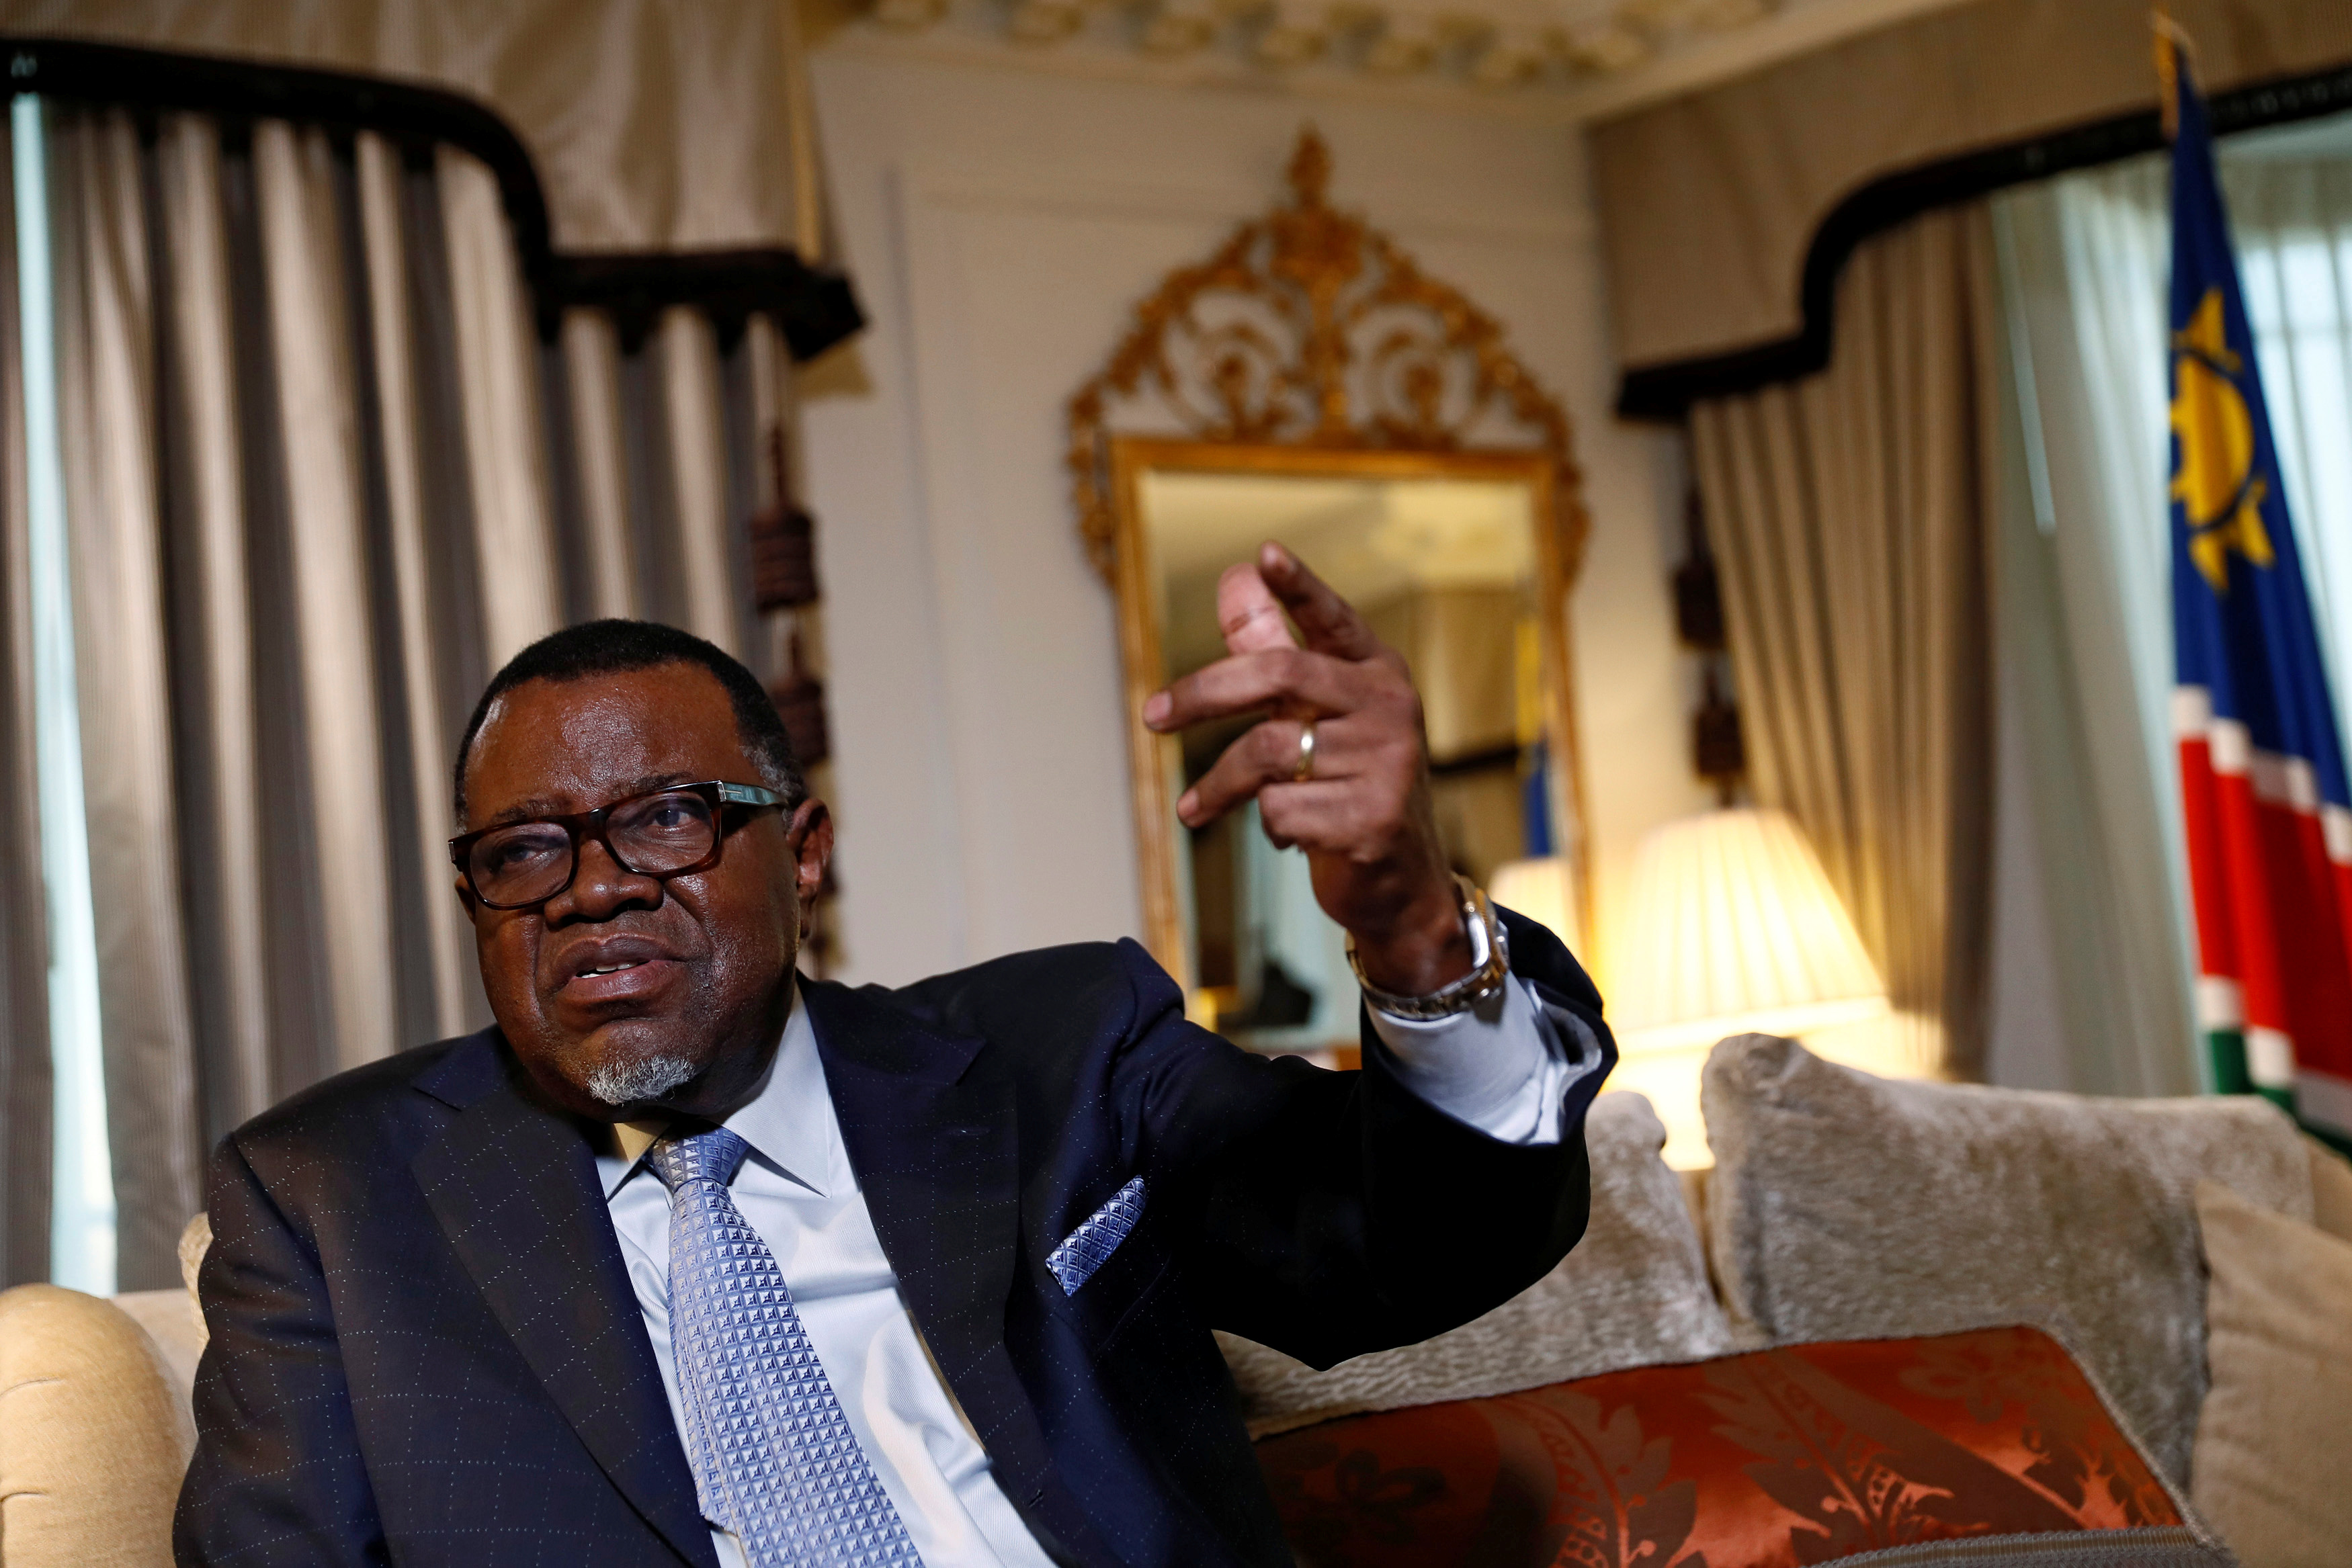 President Hage Geingob of Namibia gestures during an interview with Reuters in central London, Britain December 1, 2016.